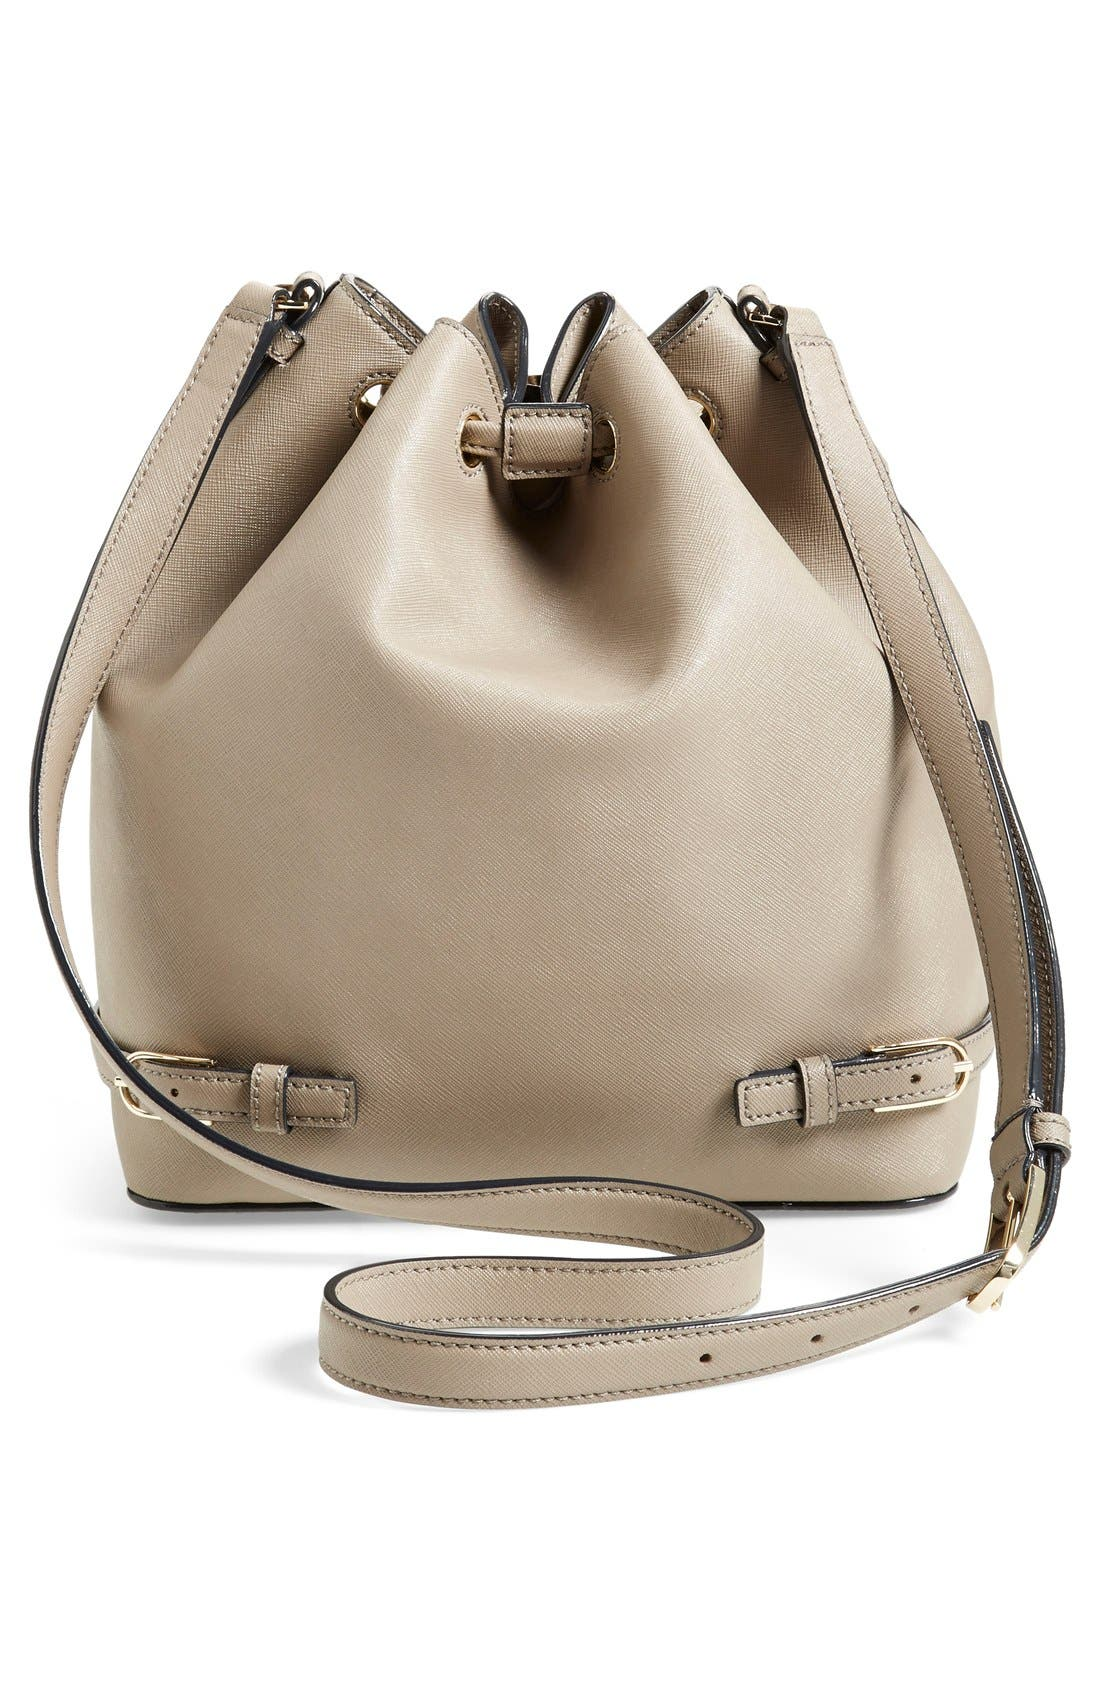 Alternate Image 3  - Tory Burch 'Robinson' Saffiano Leather Bucket Bag